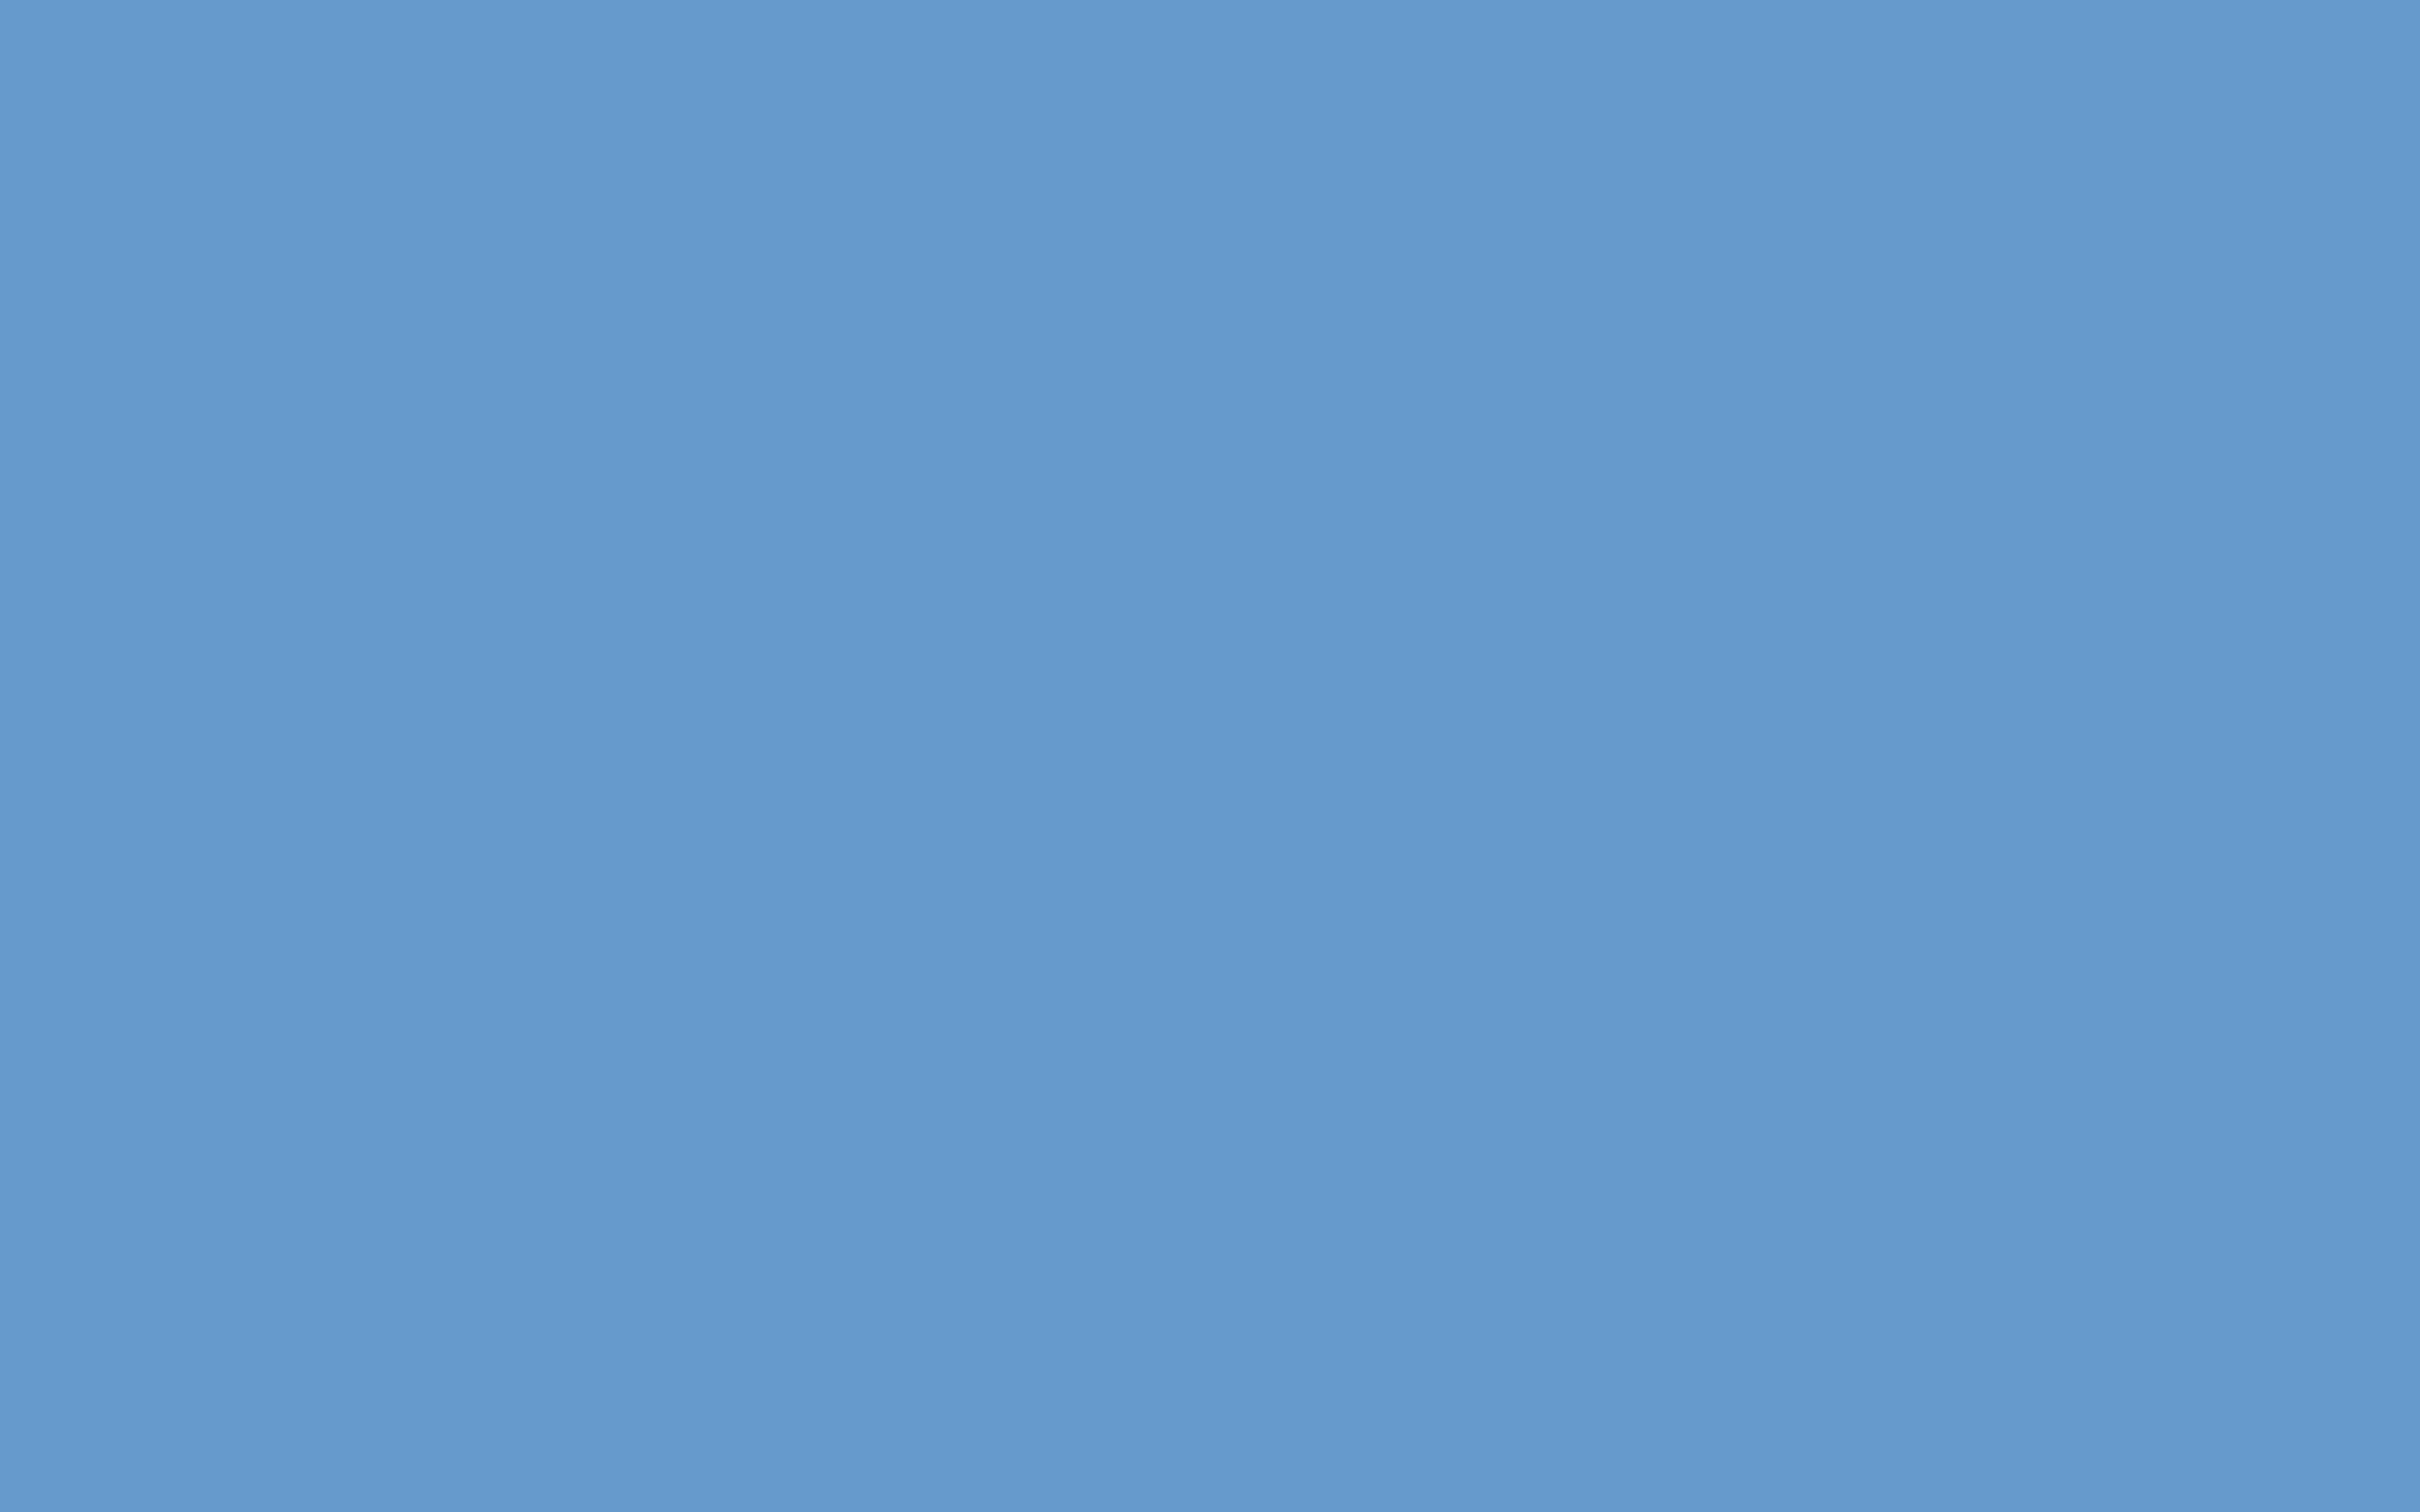 2880x1800 Blue-gray Solid Color Background